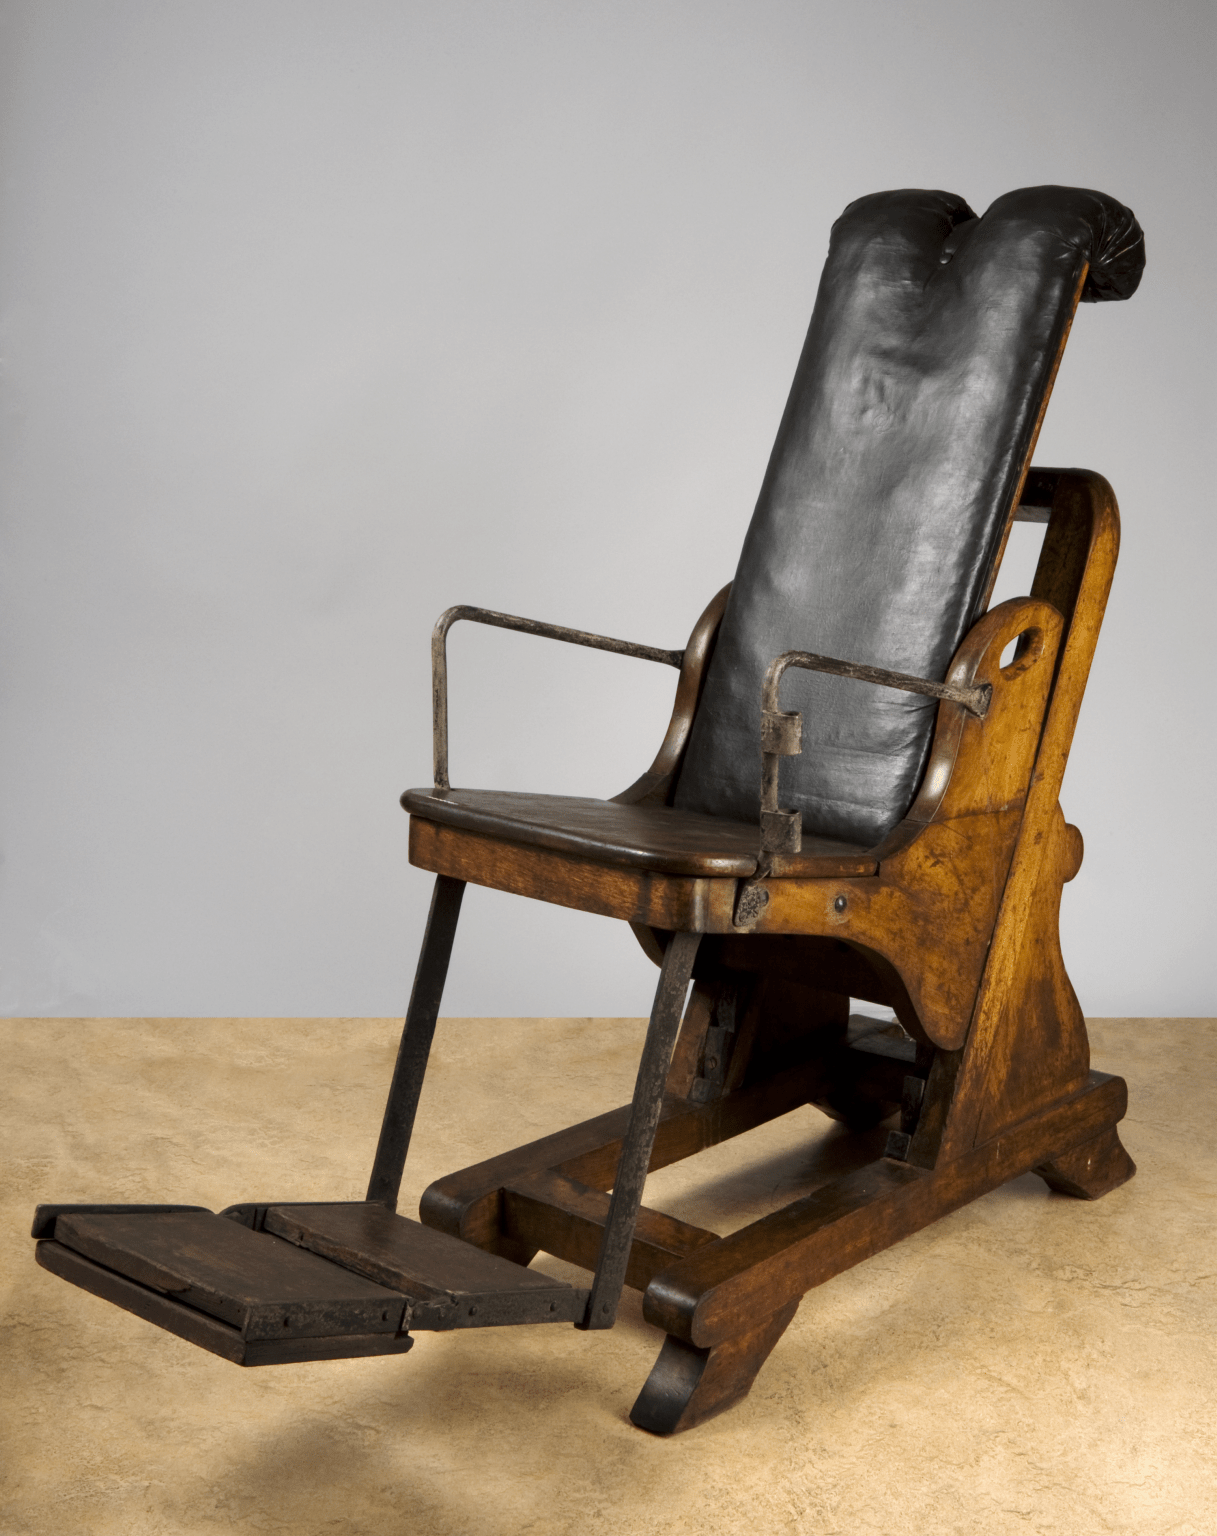 antique dentist chairs comfy deck adjustable dental chair england 1701 1800 www